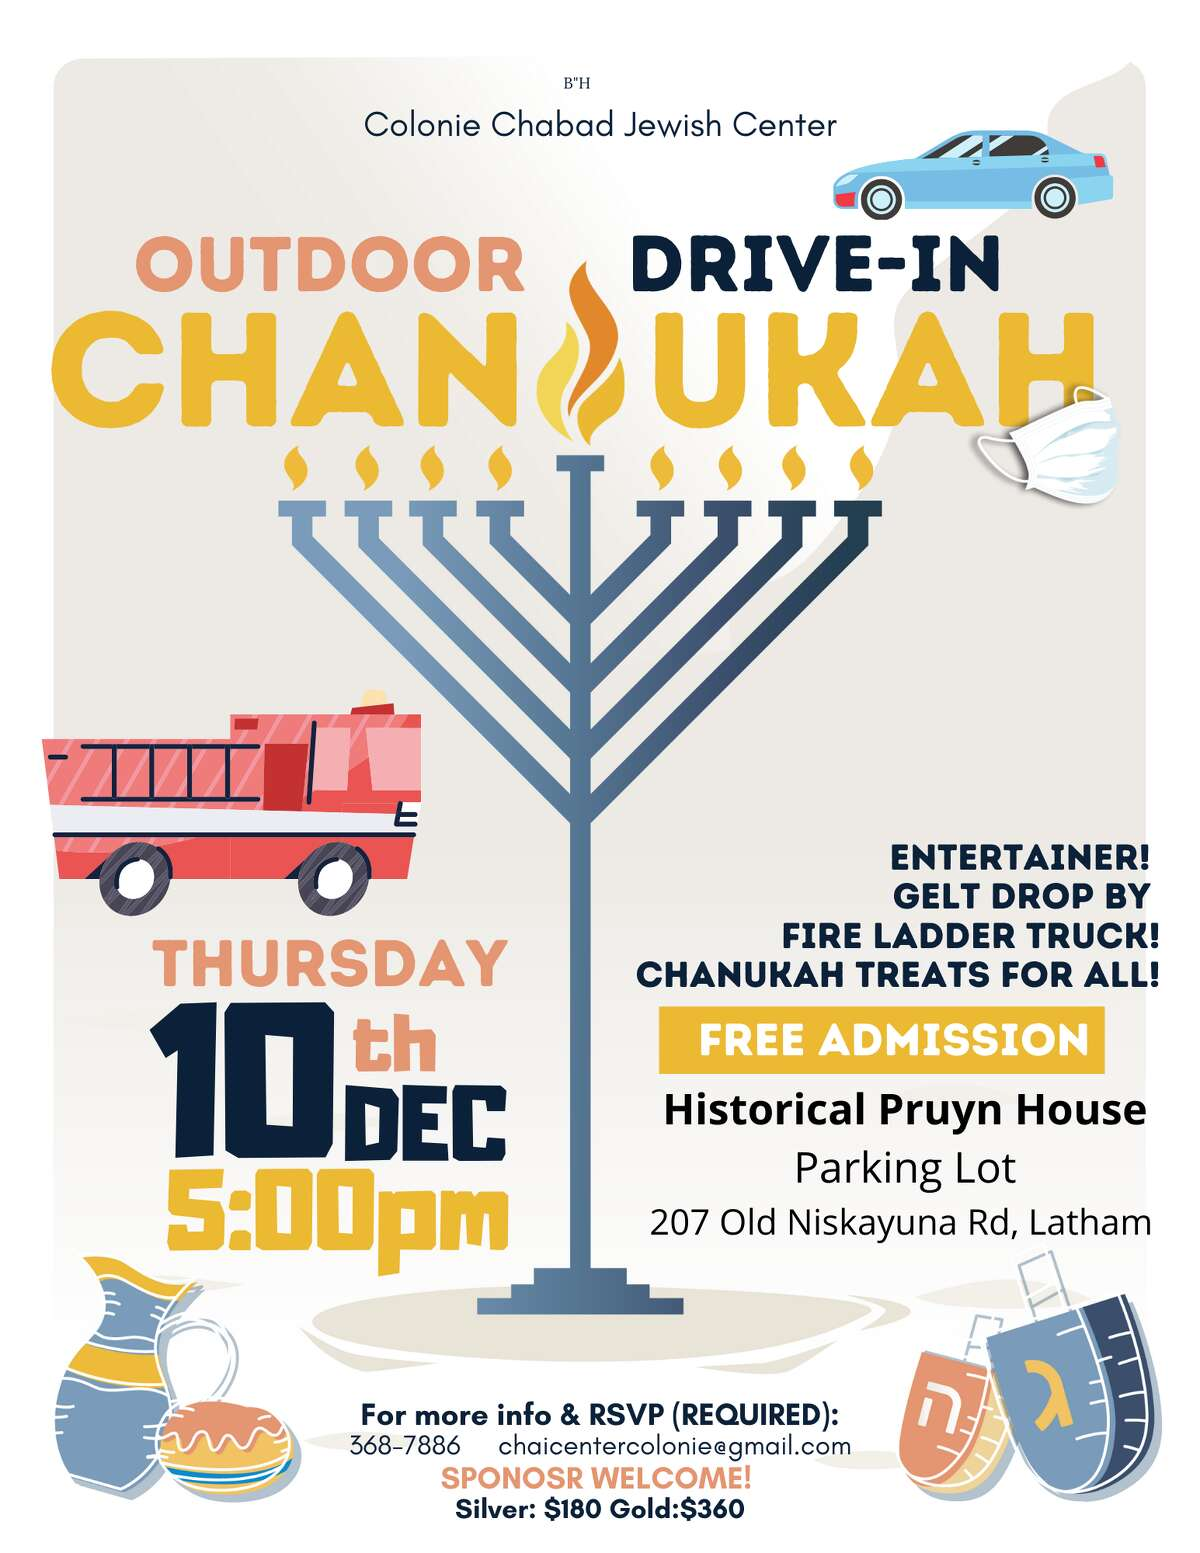 Rabbi Mordechai Rubin of the Colonie Chabad has planned creative, joyful Hanukkah celebrations that the public can join including a car parade with a huge firetruck delivering gelt (chocolate coins wrapped in gold foil).